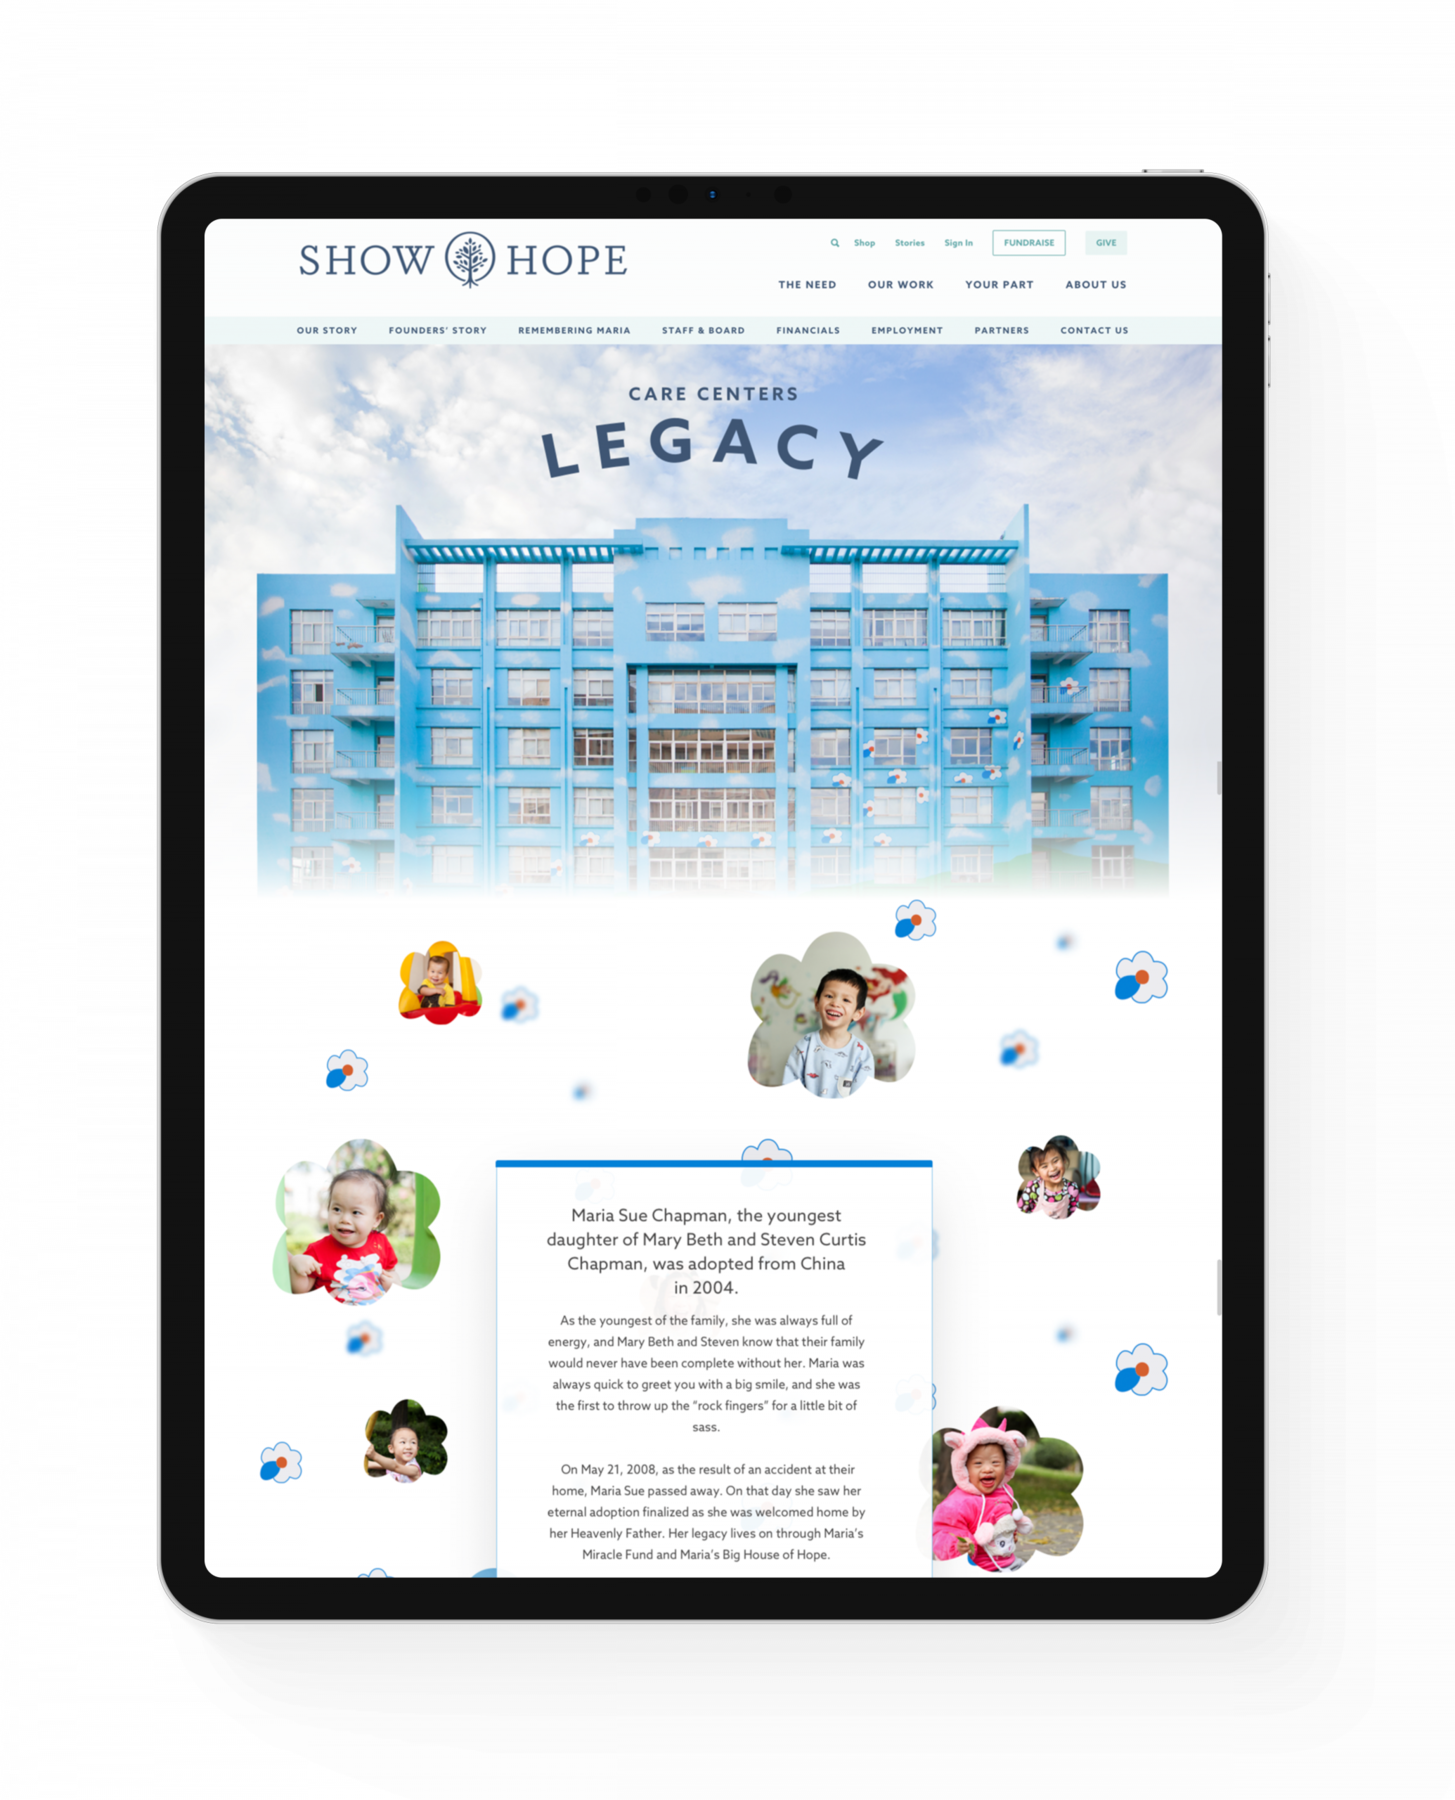 An iPad that shows the Show Hope website, which includes a Care Center building, photos of the children who live there, and text